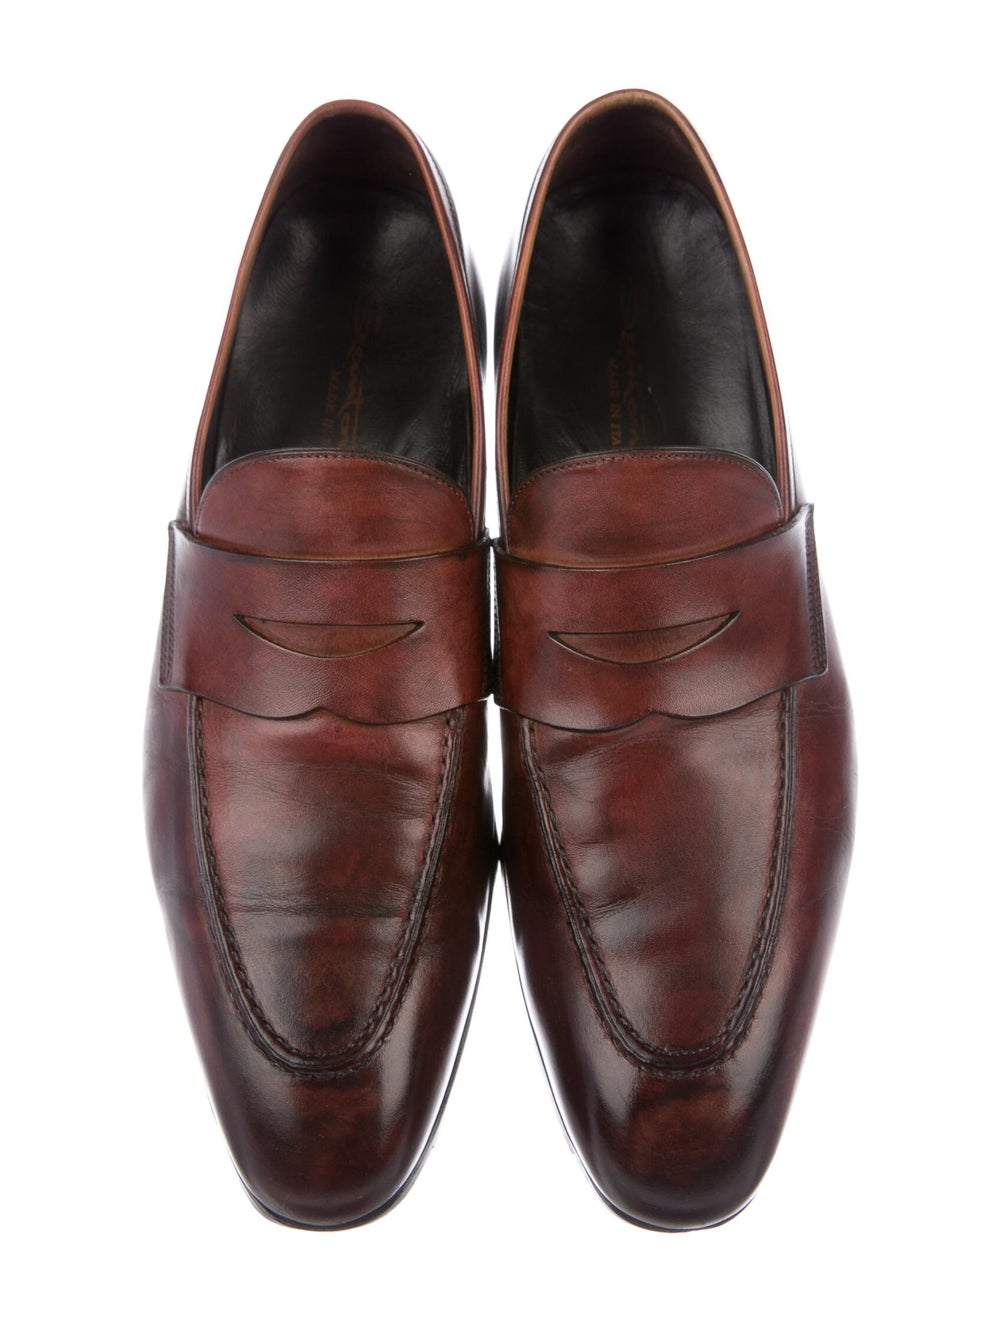 Santoni Leather Penny Loafers brown - image 3